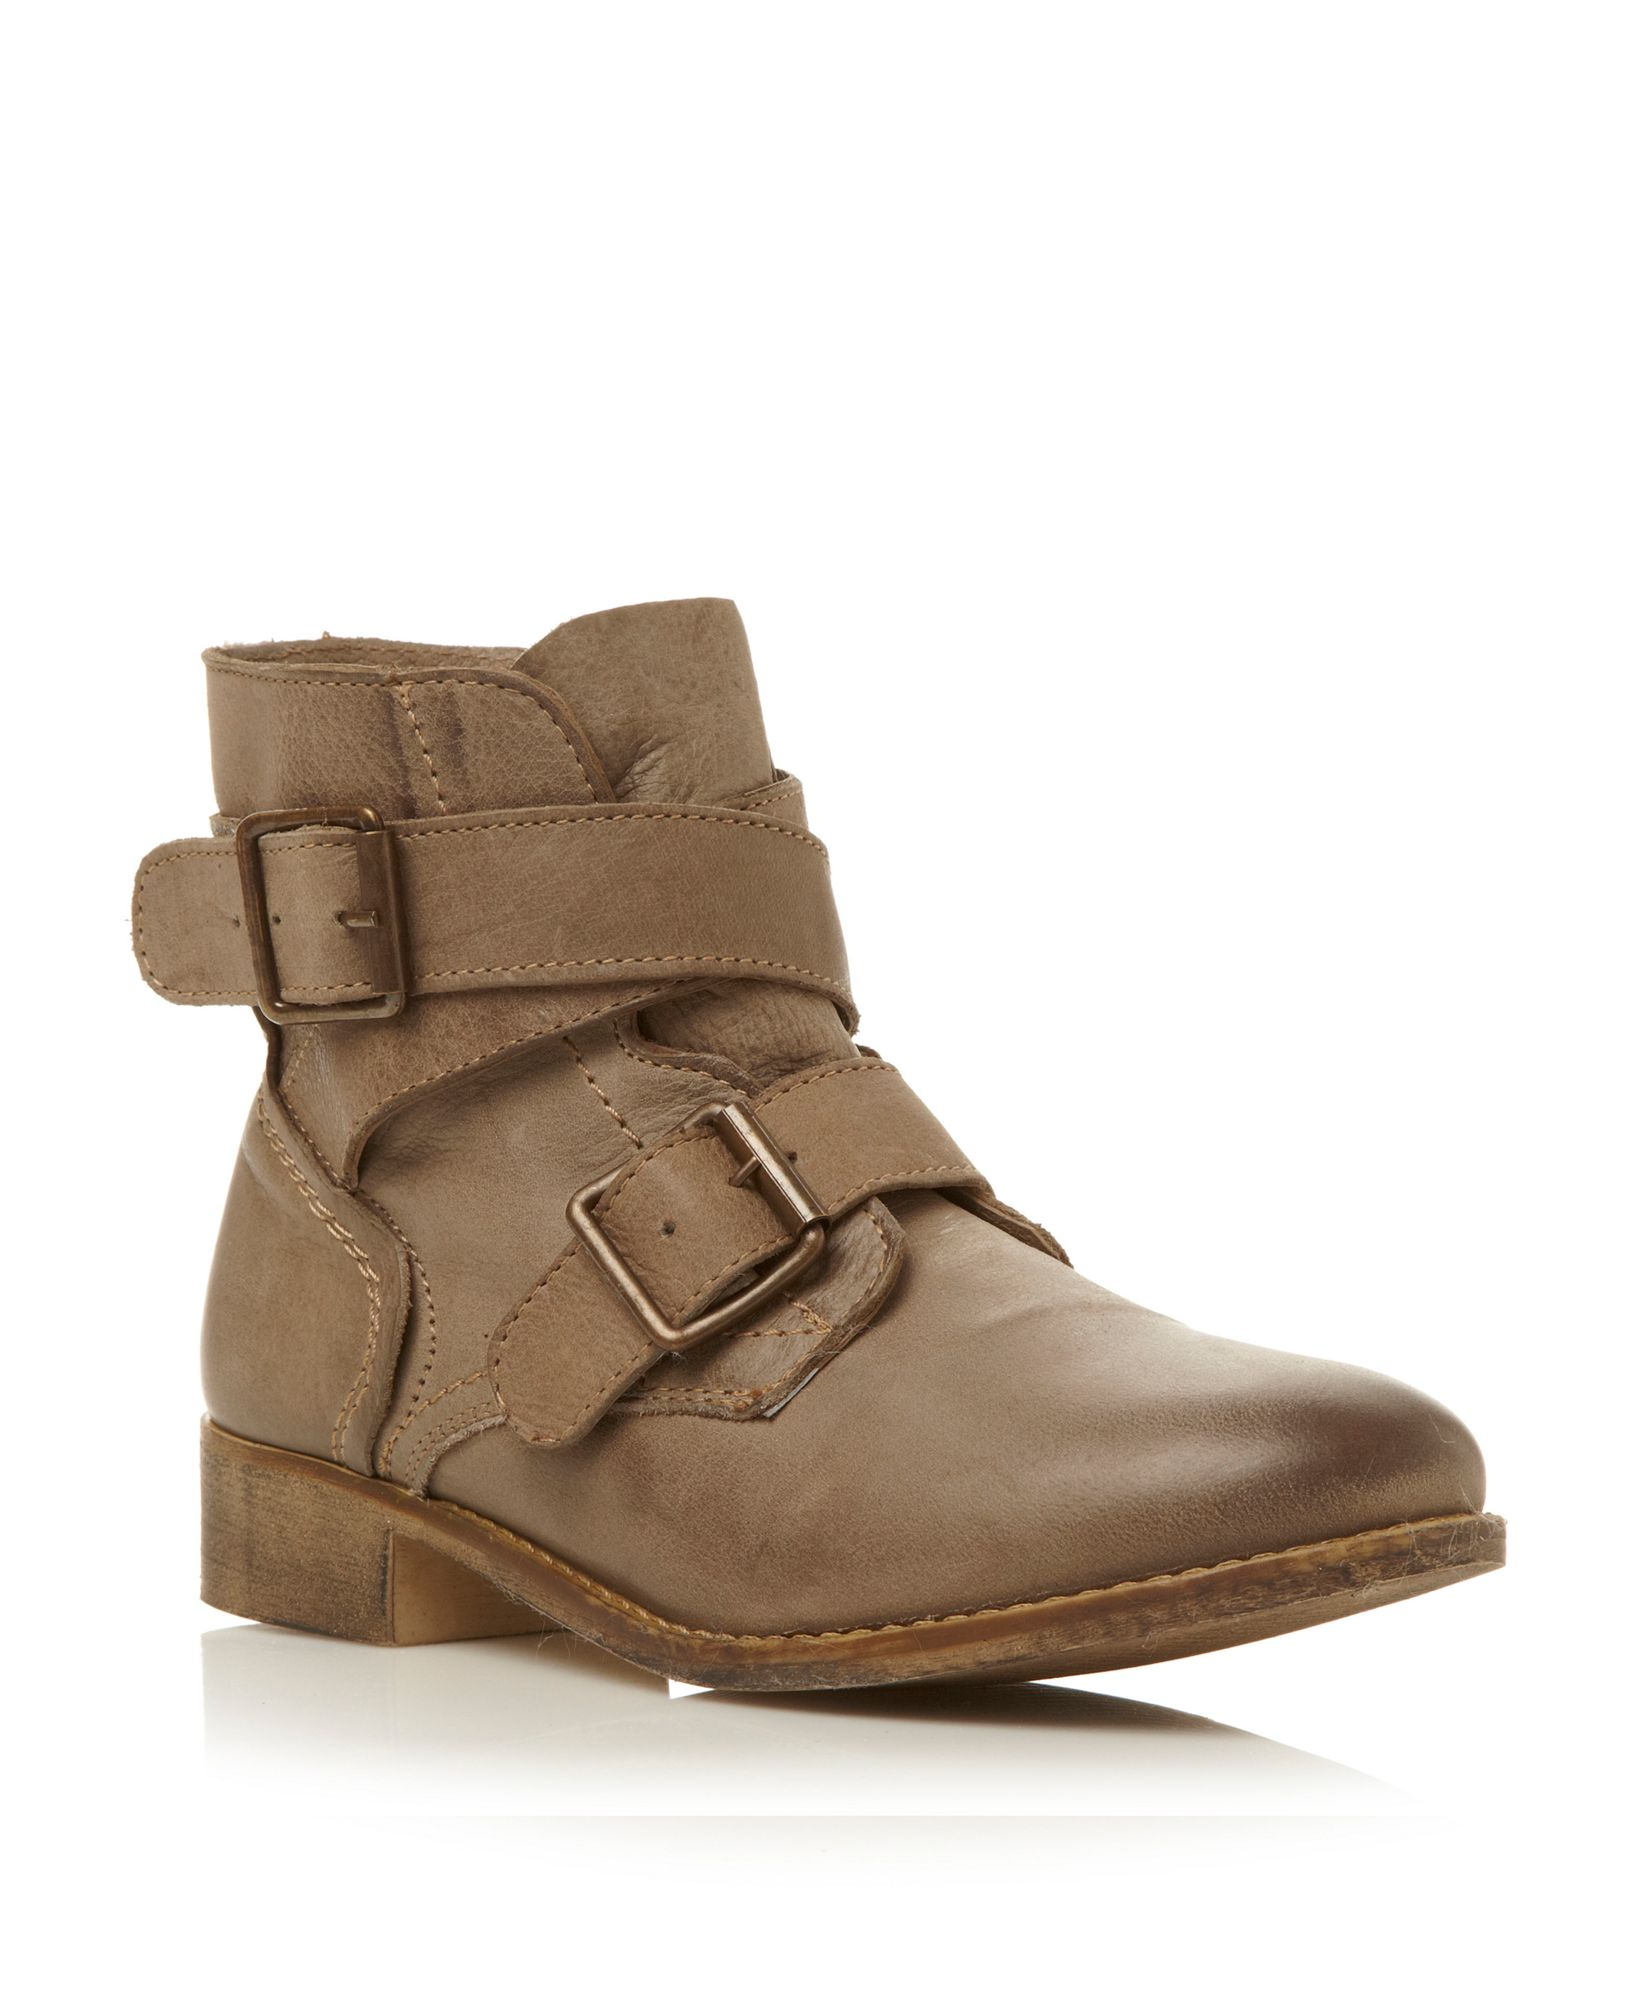 steve madden teritorydouble buckle ankle boots in